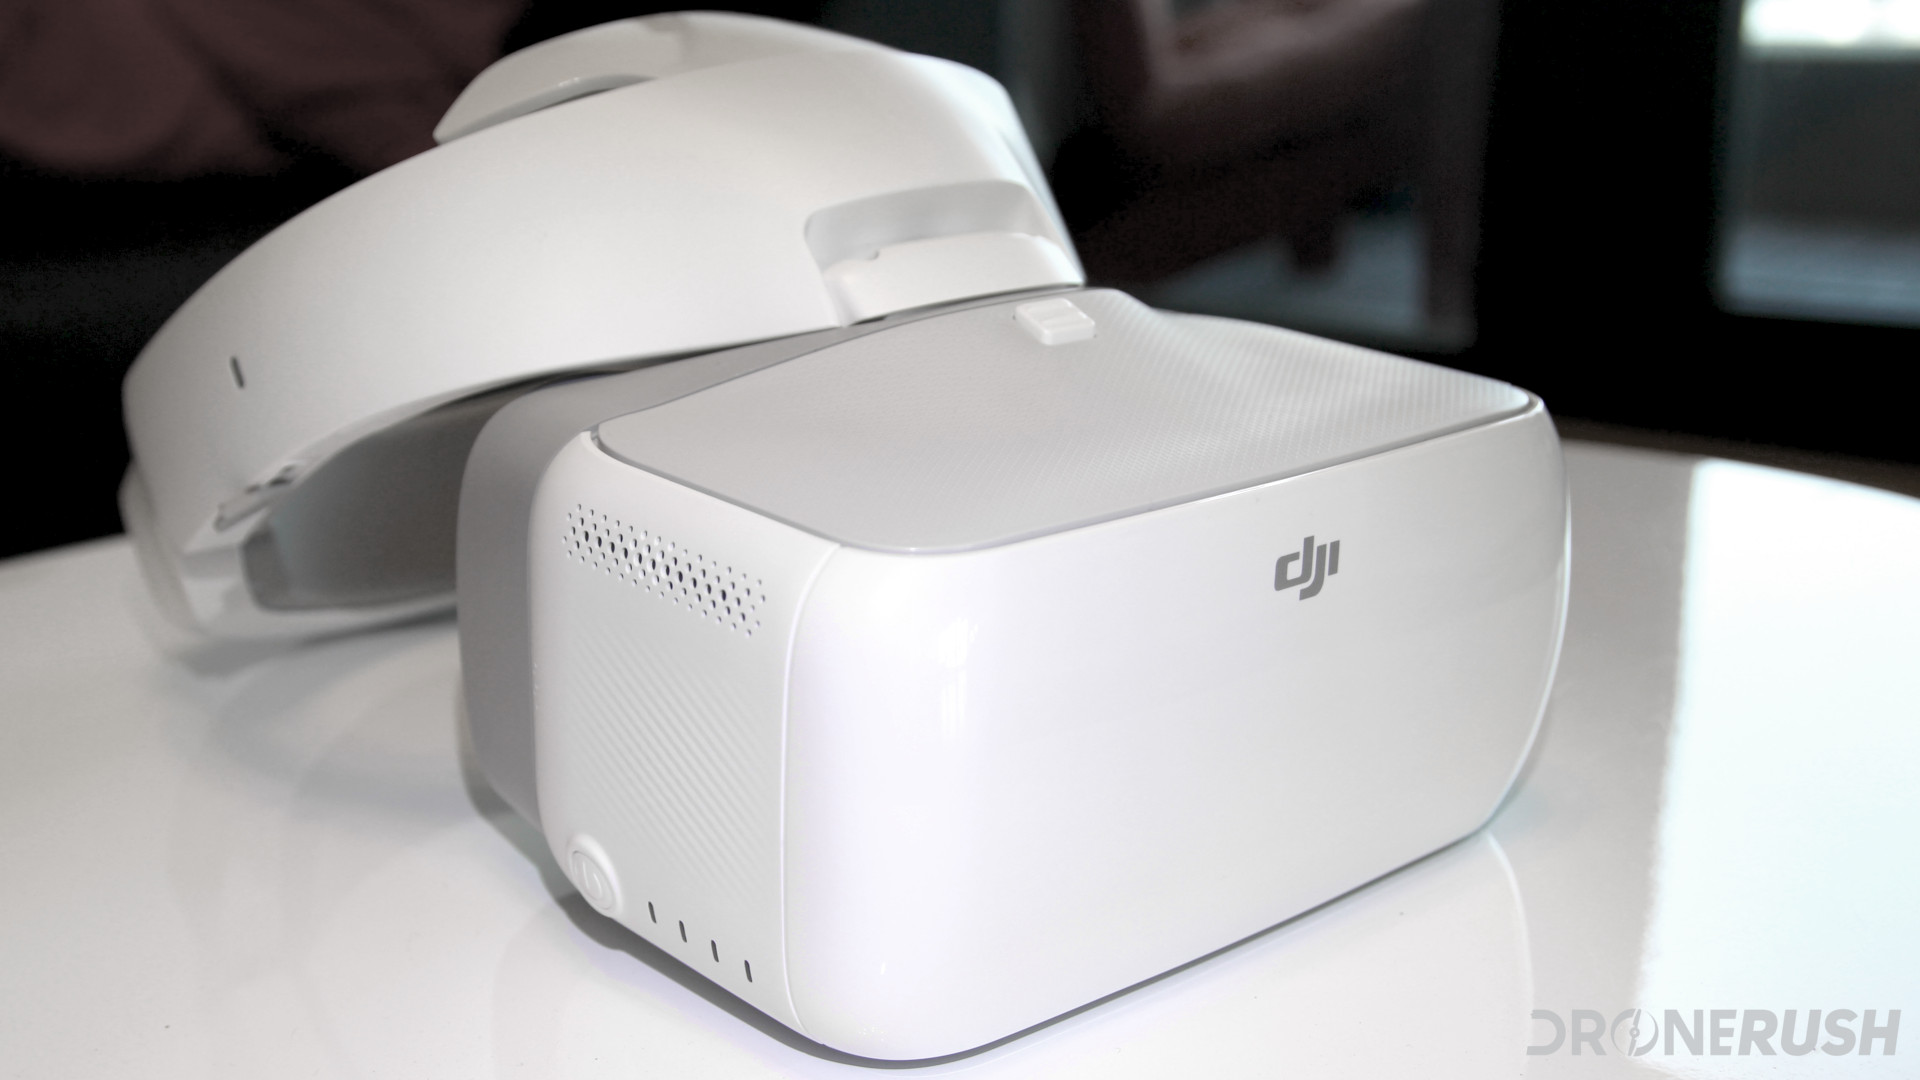 Here is an image of the DJI Goggles sitting on a white glossy table, what better way to introduce our DJI Goggles with DJI Mavic Pro VR headset FPV goggles article?